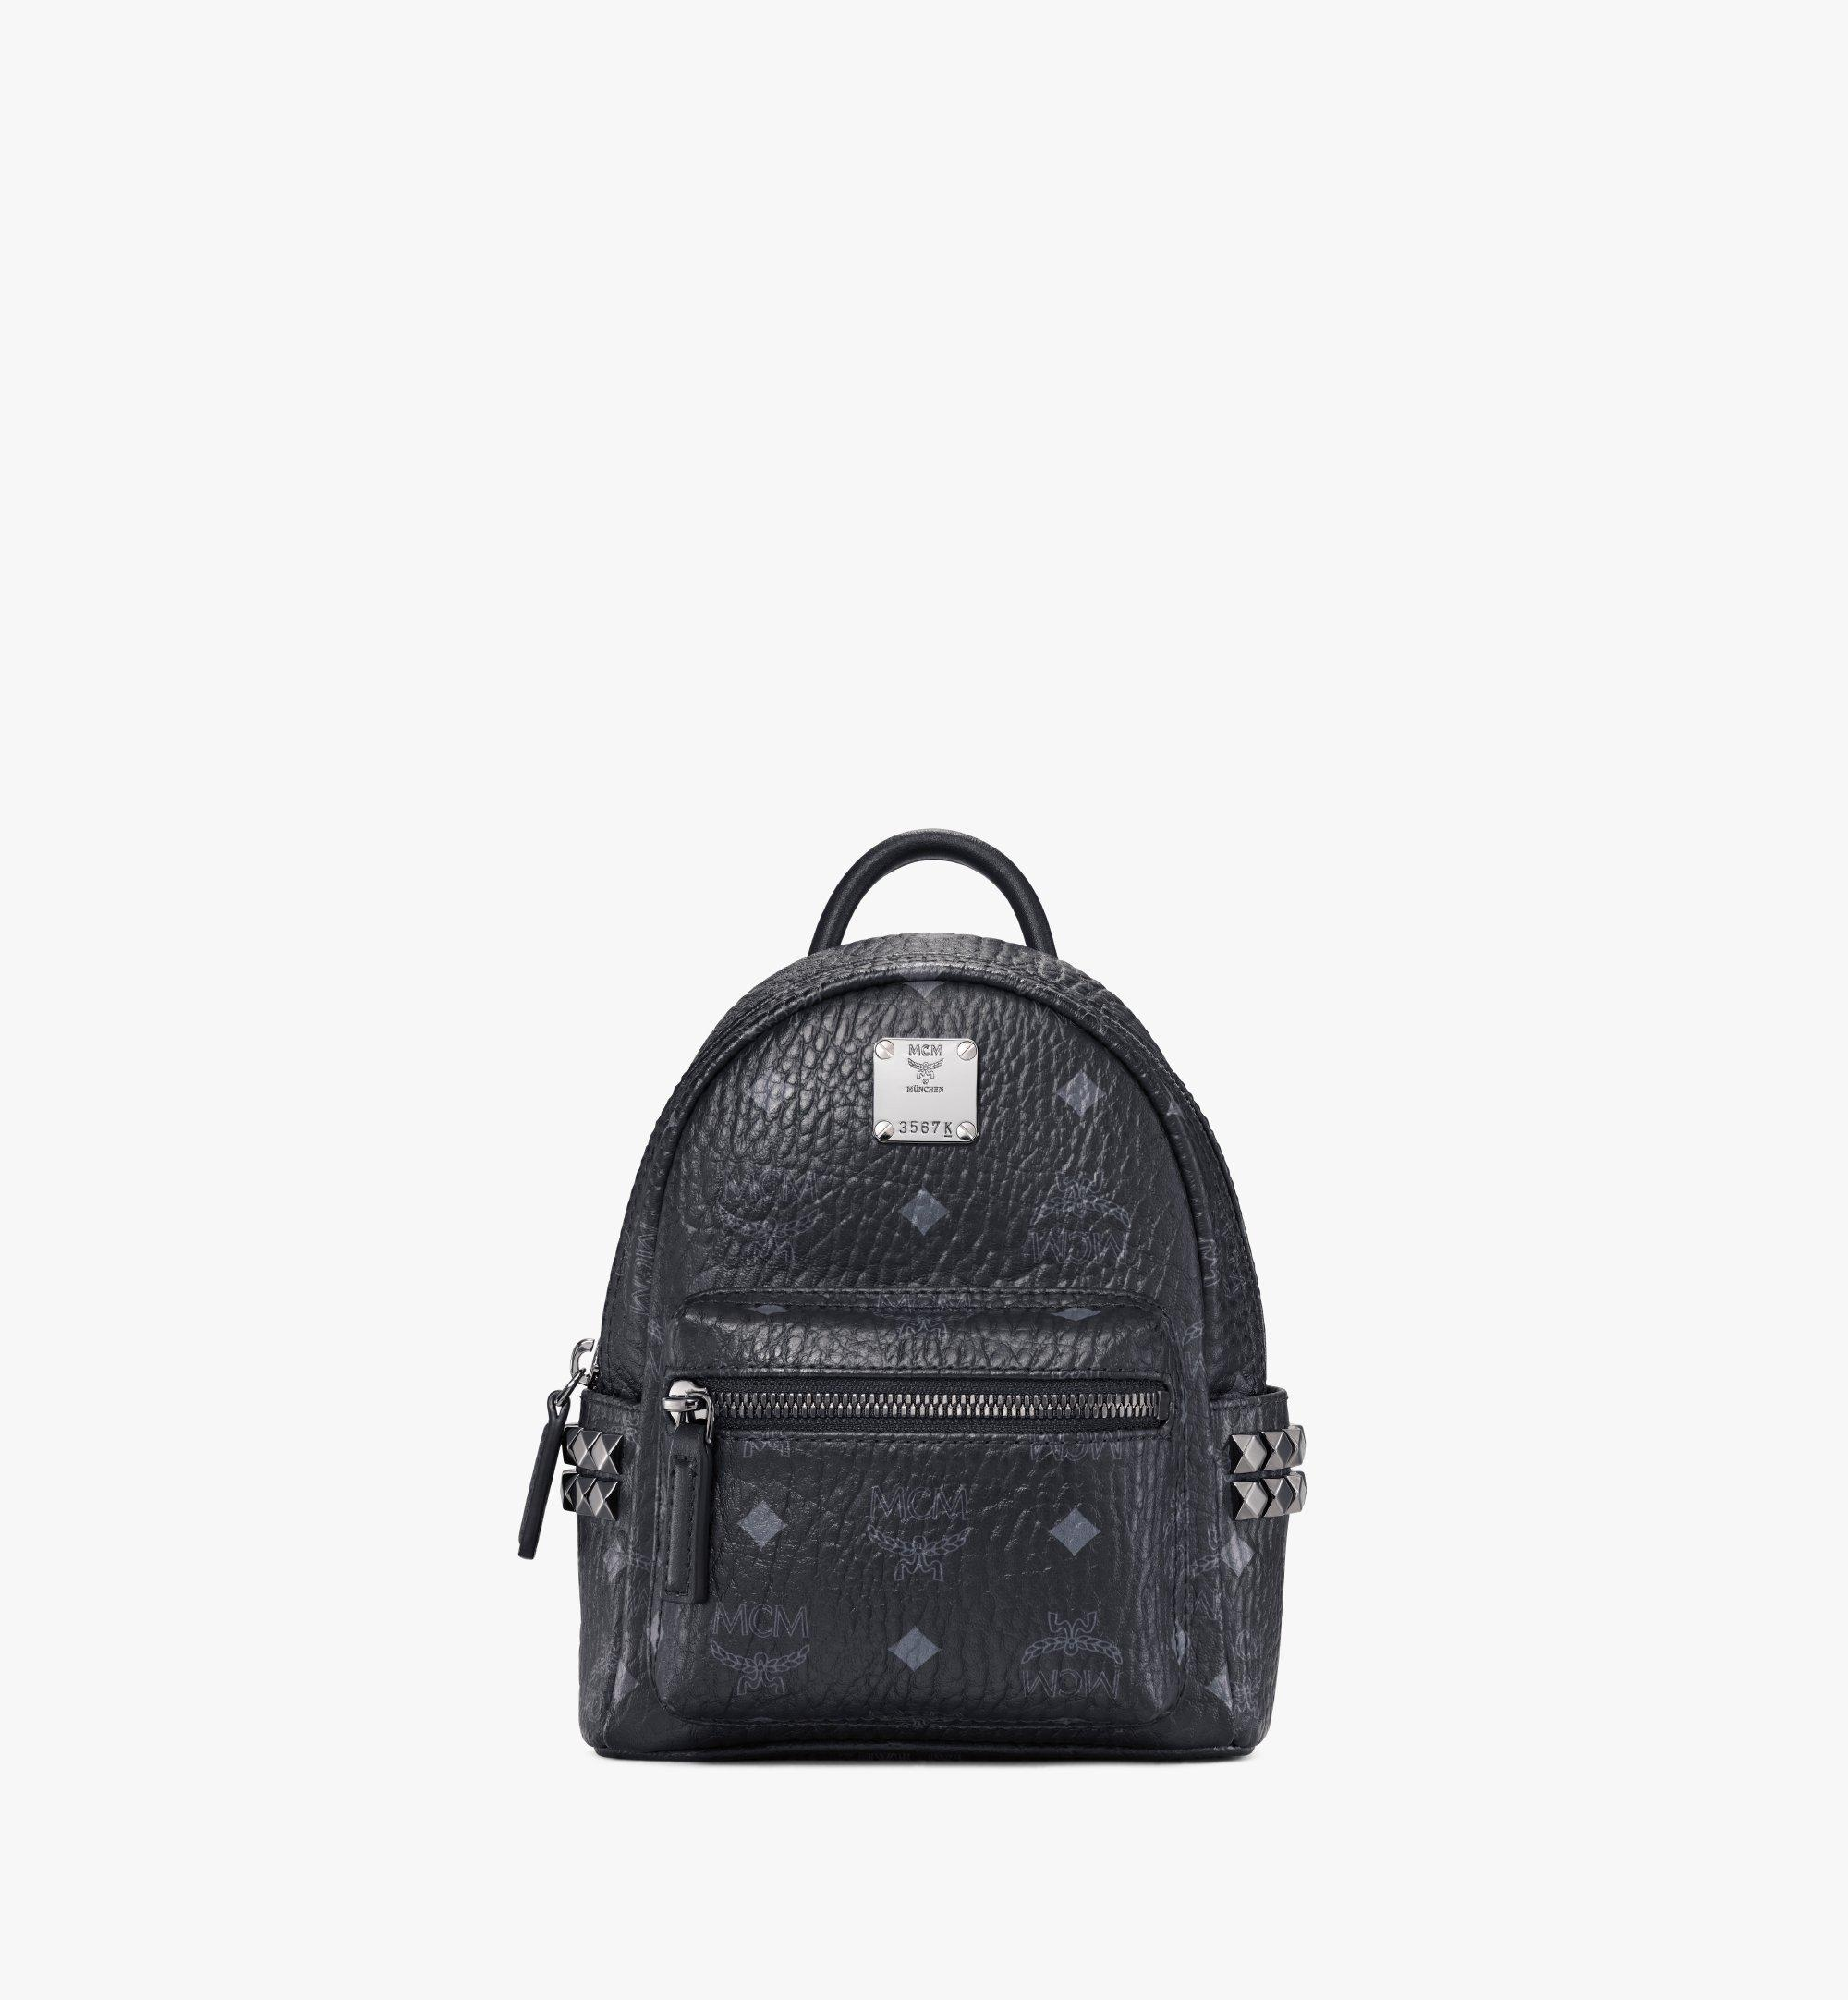 MCM Stark Side Studs Bebe Boo Rucksack in Visetos Black MMK6SVE92BK001 Alternate View 1